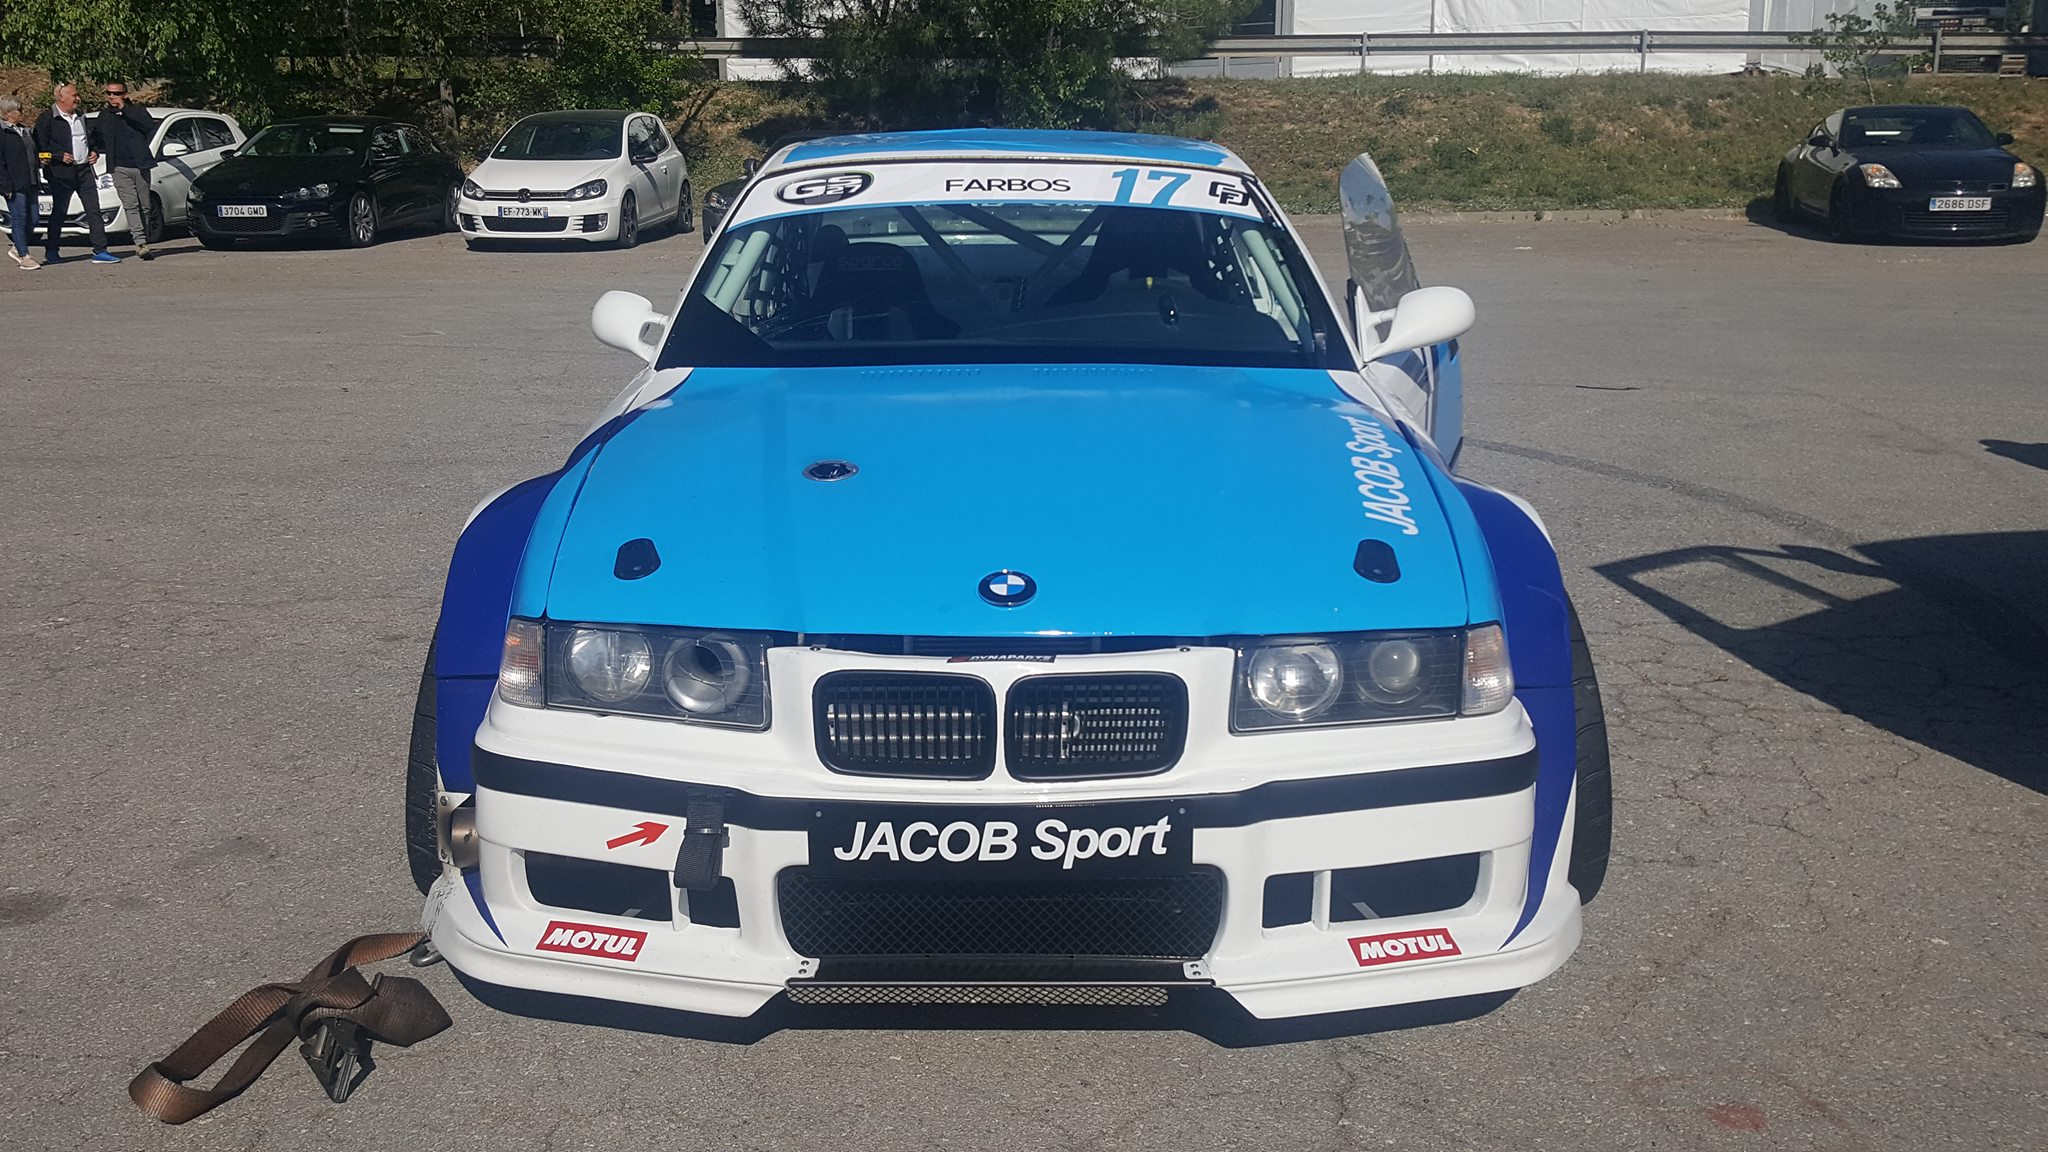 Jacob Sport BMW E36 with a Turbo VQ35 V6